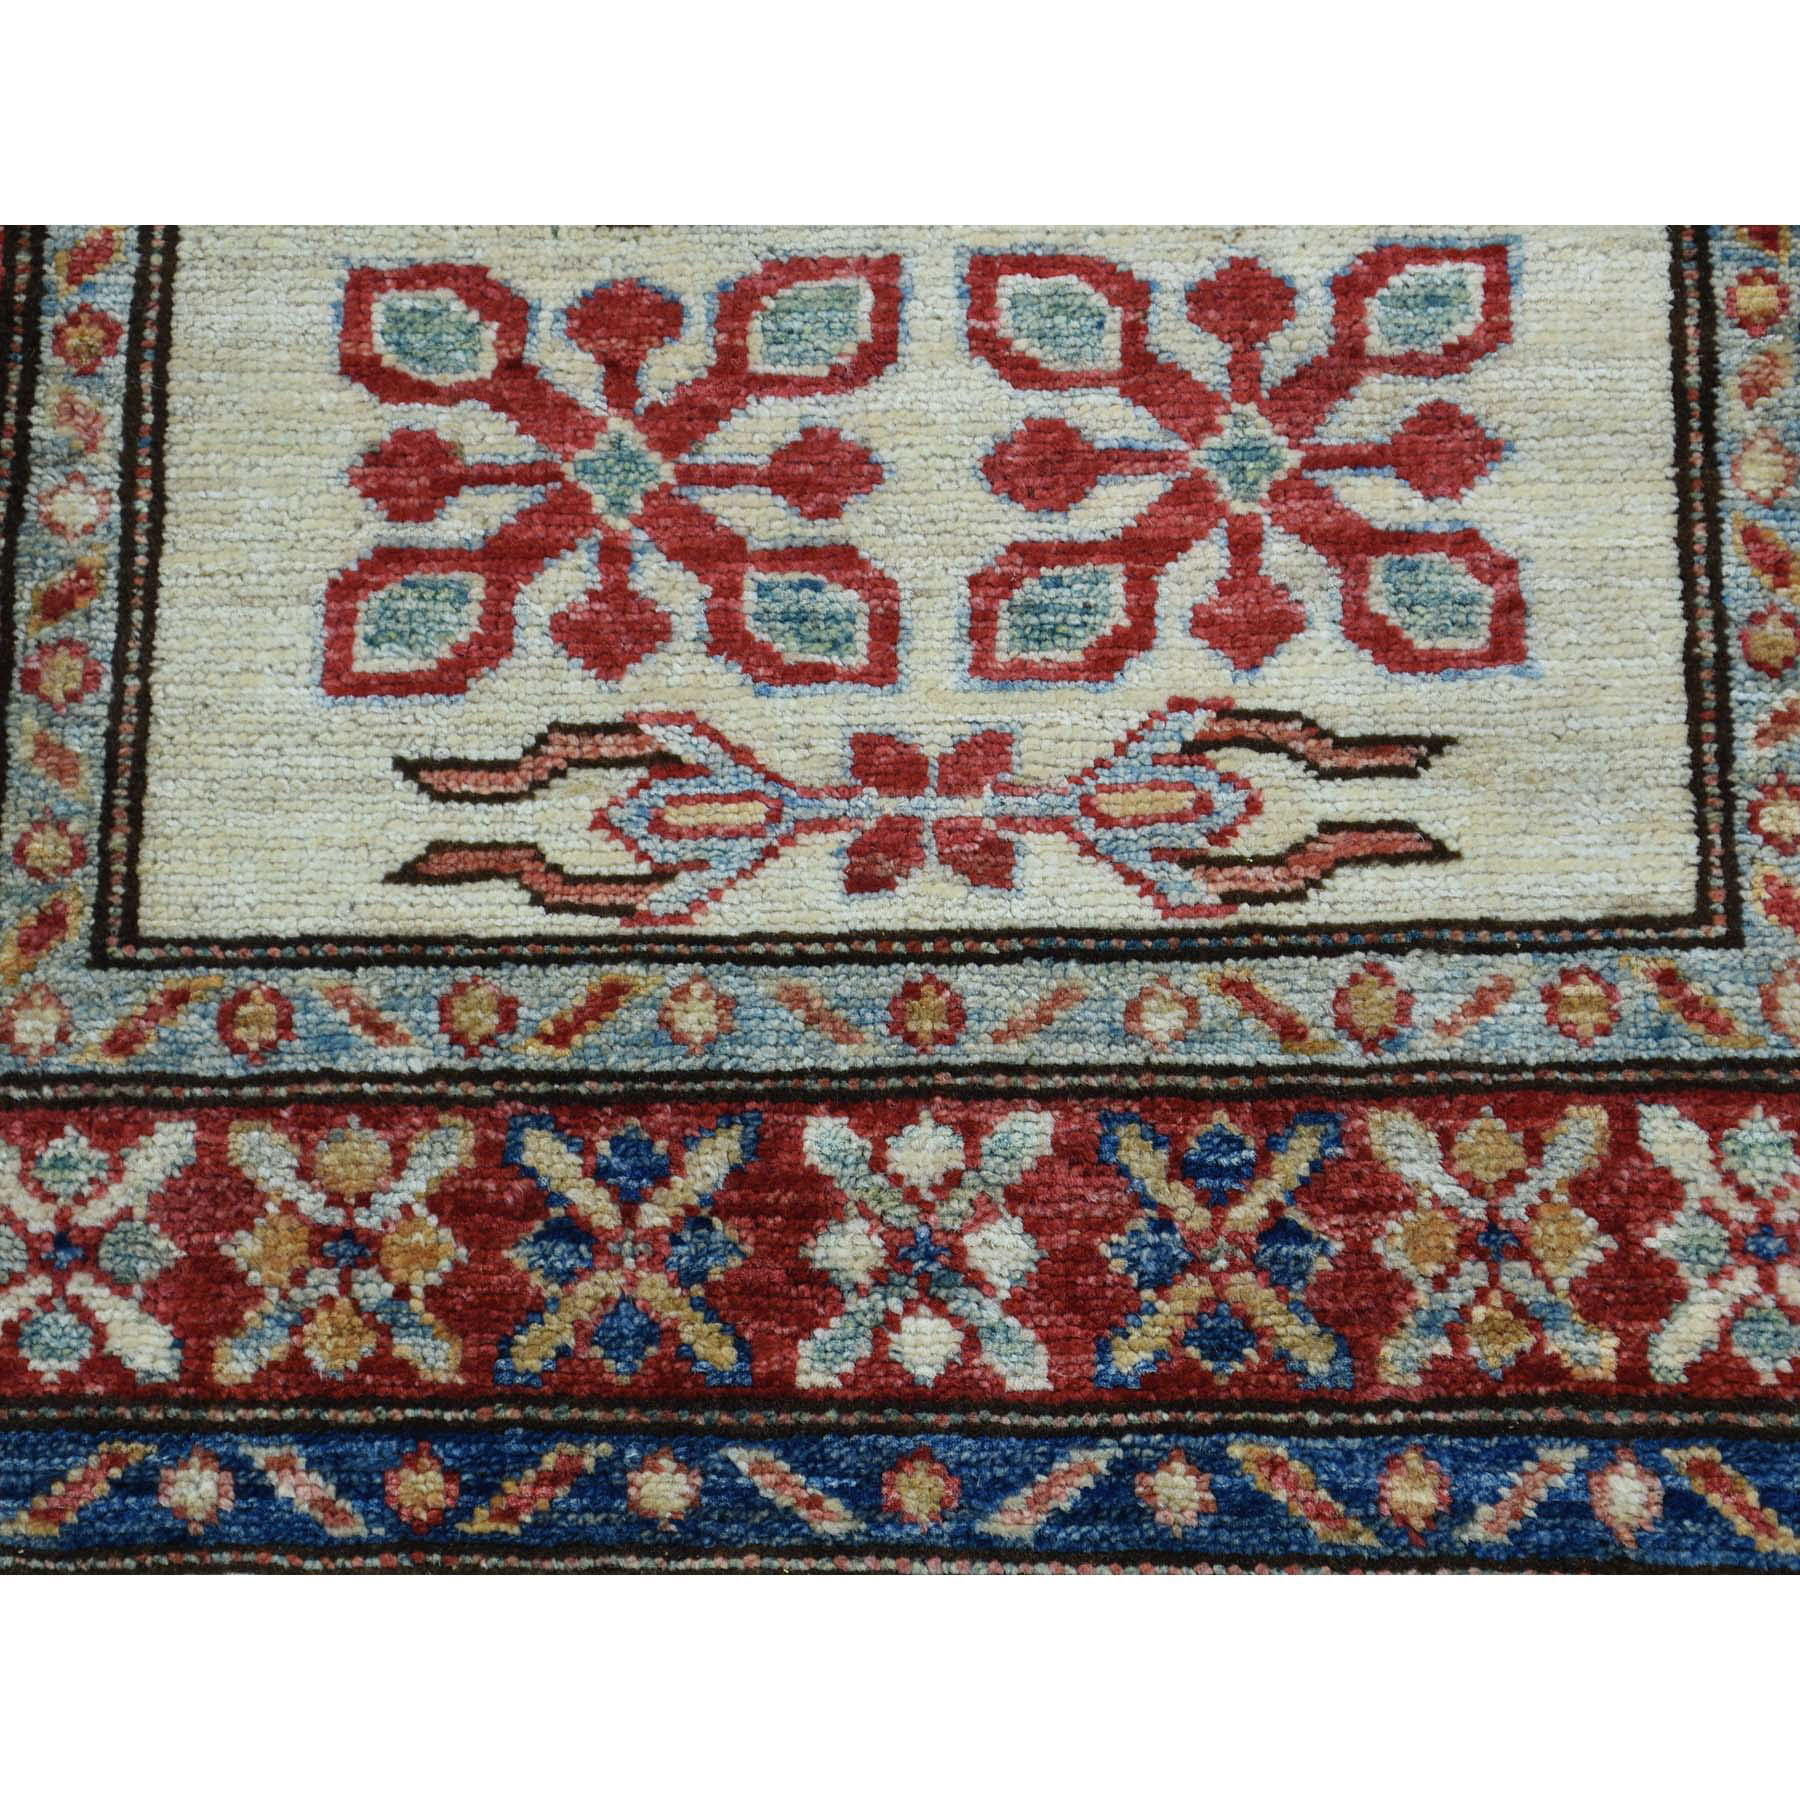 2-1 X2-10  Hand Knotted Tribal And Geometric Pure Wool Super Kazak Rug